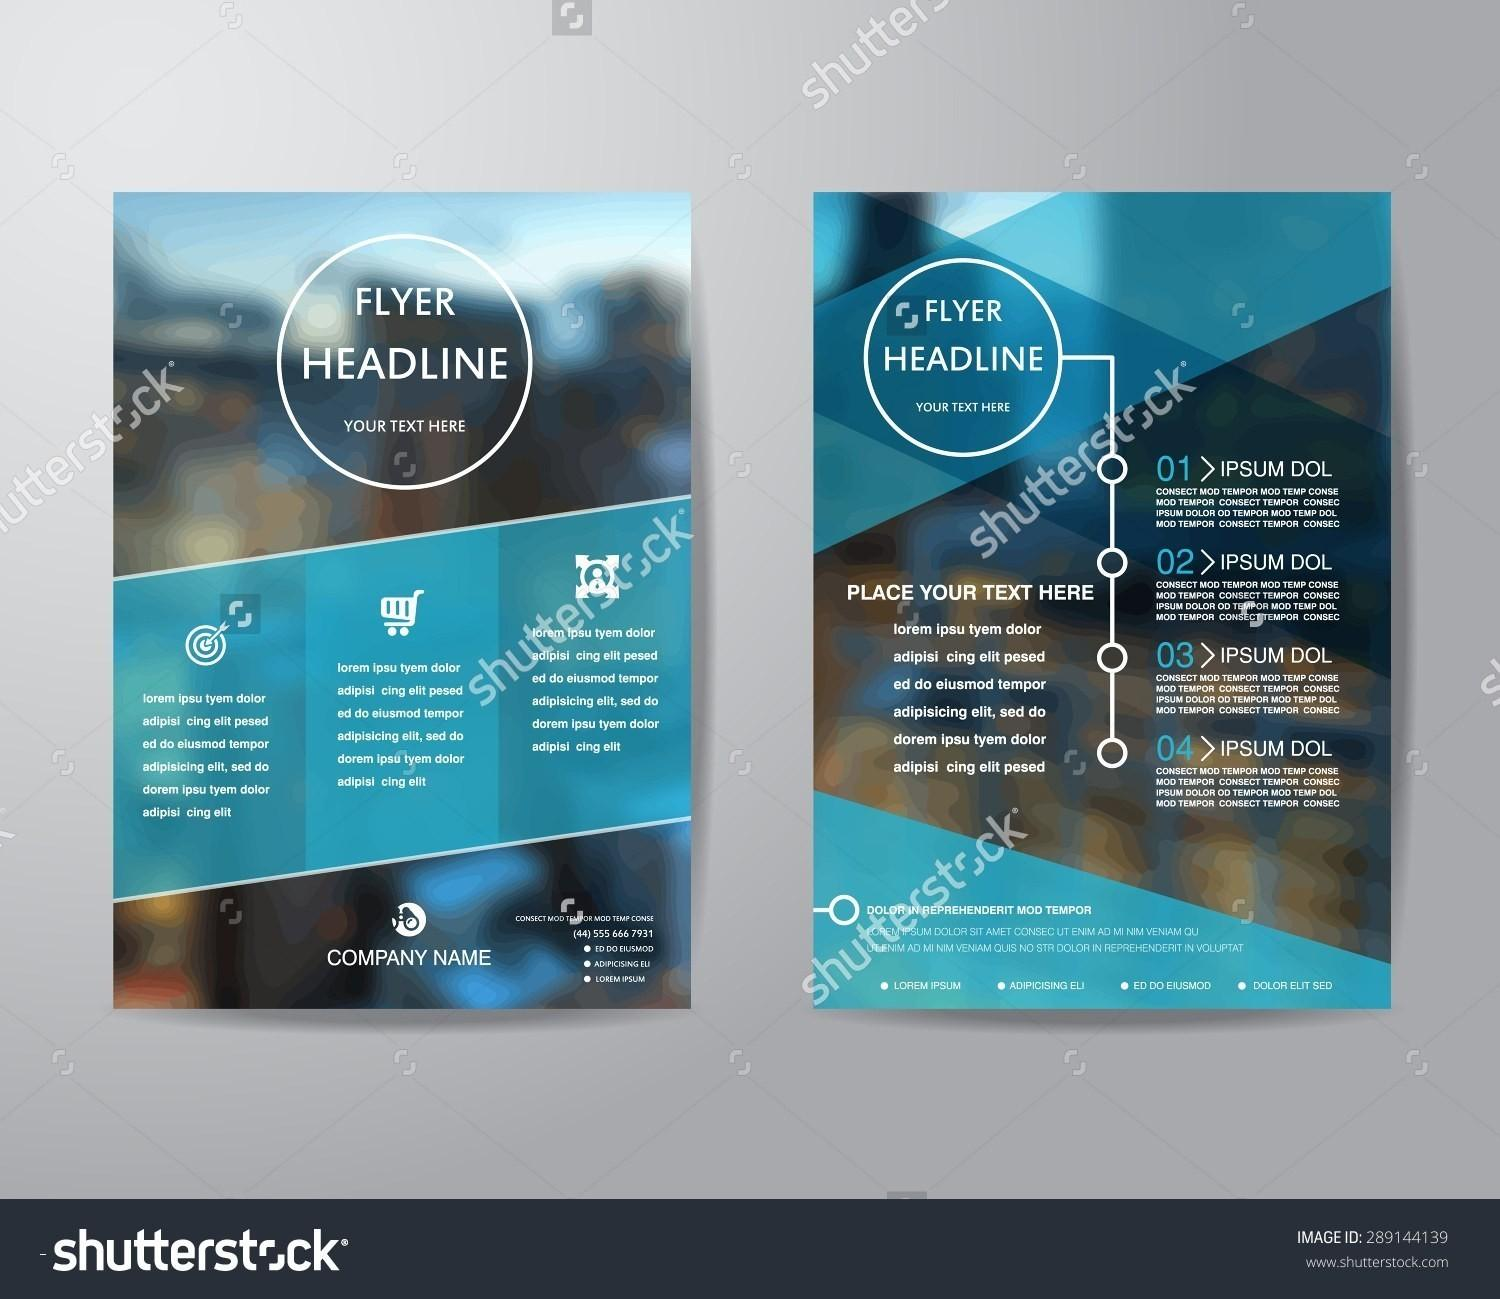 Free Business Flyer Templates Publisher